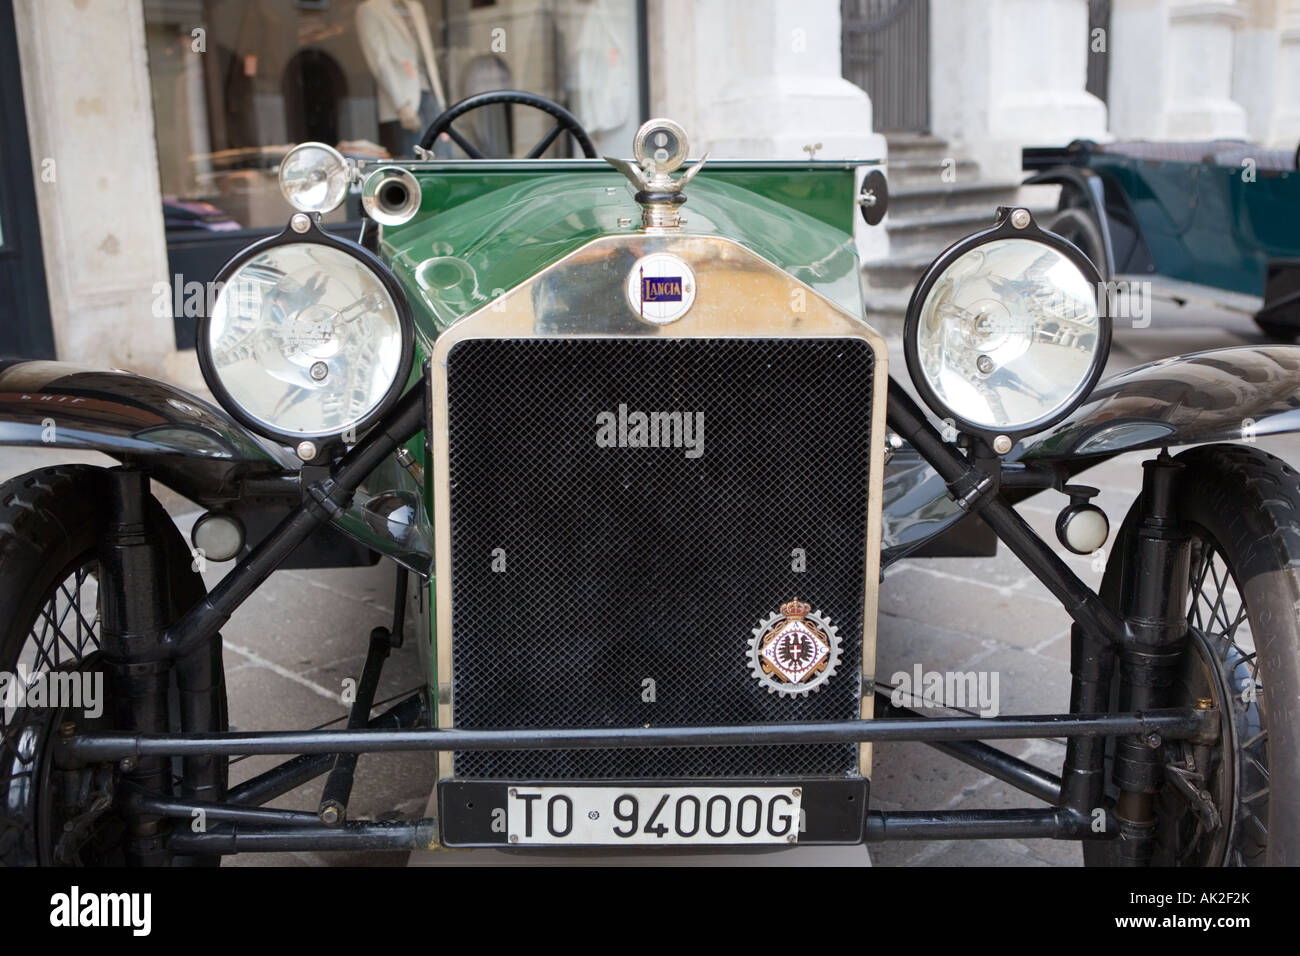 Old Lancia car interior Vicenza Veneto Italy - Stock Image